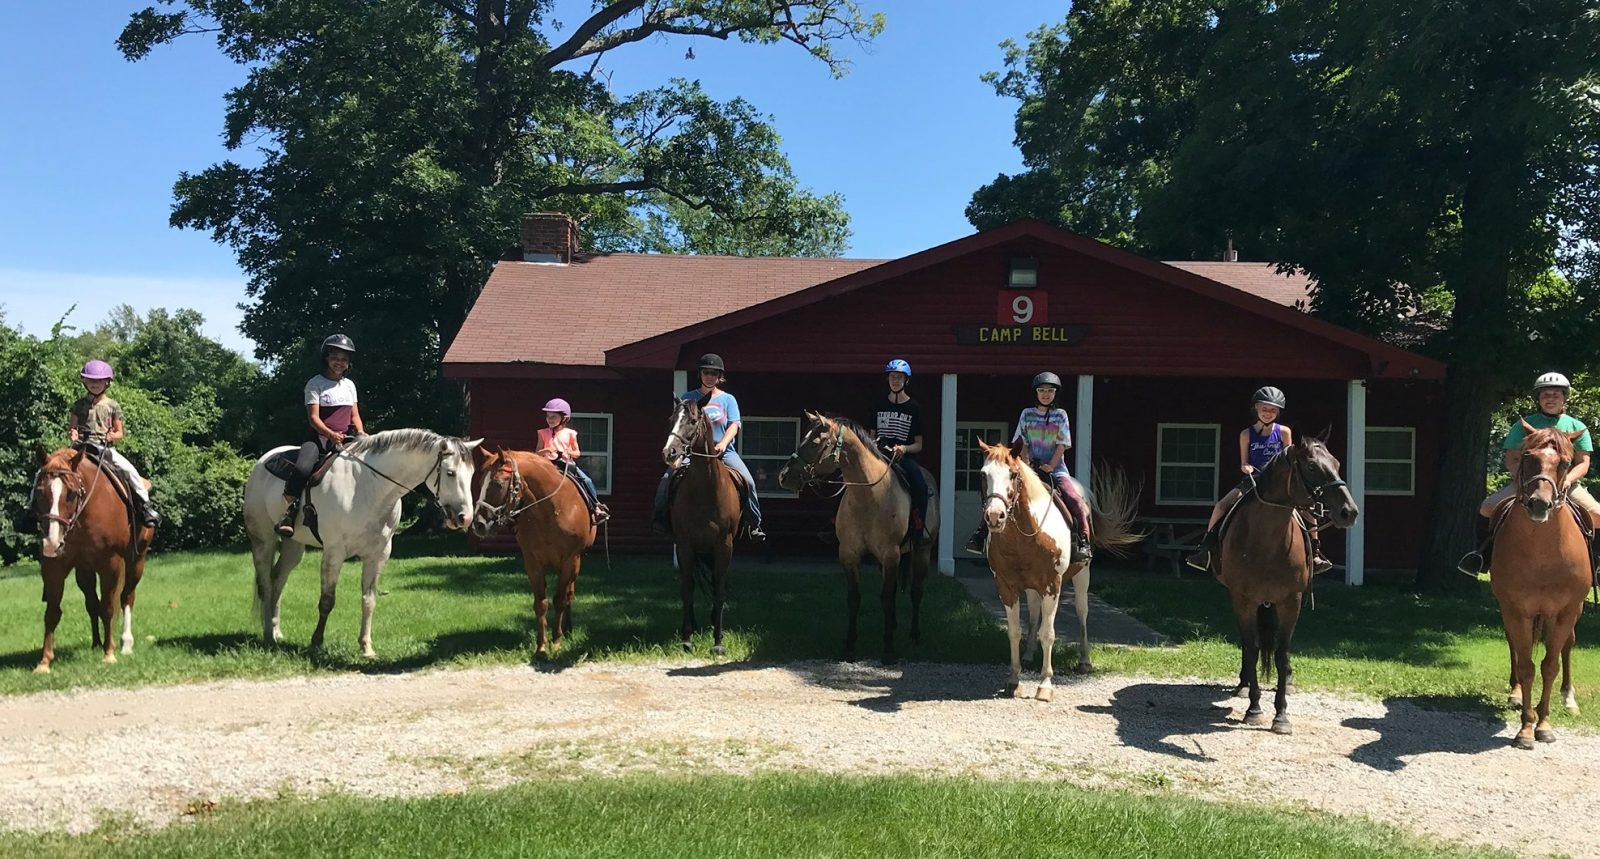 Equestrian Center at Beverly Farm. 8 Trail riders at Camp Bell.